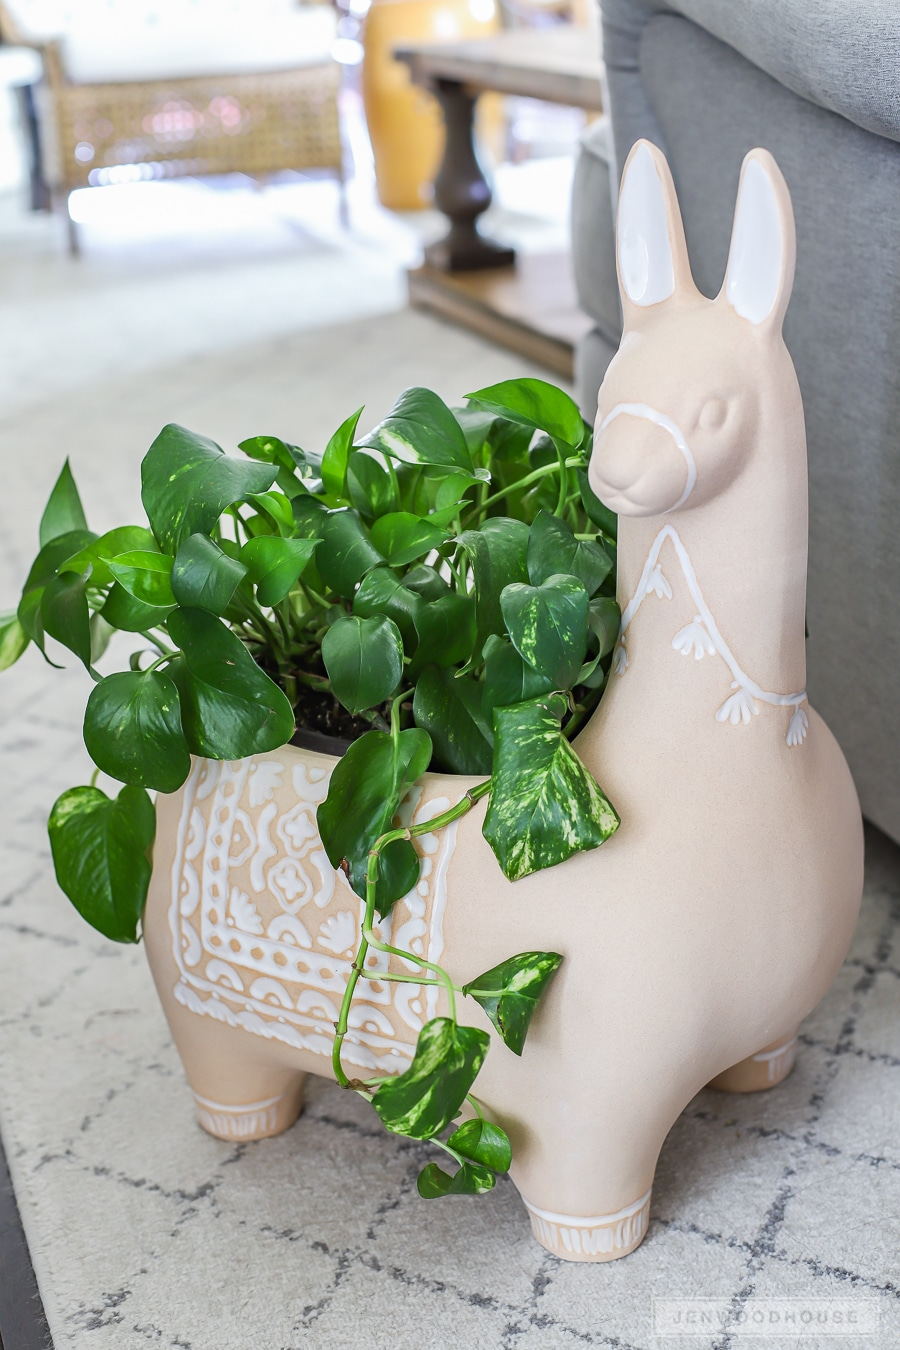 Adorable Alpaca Llama ceramic planter